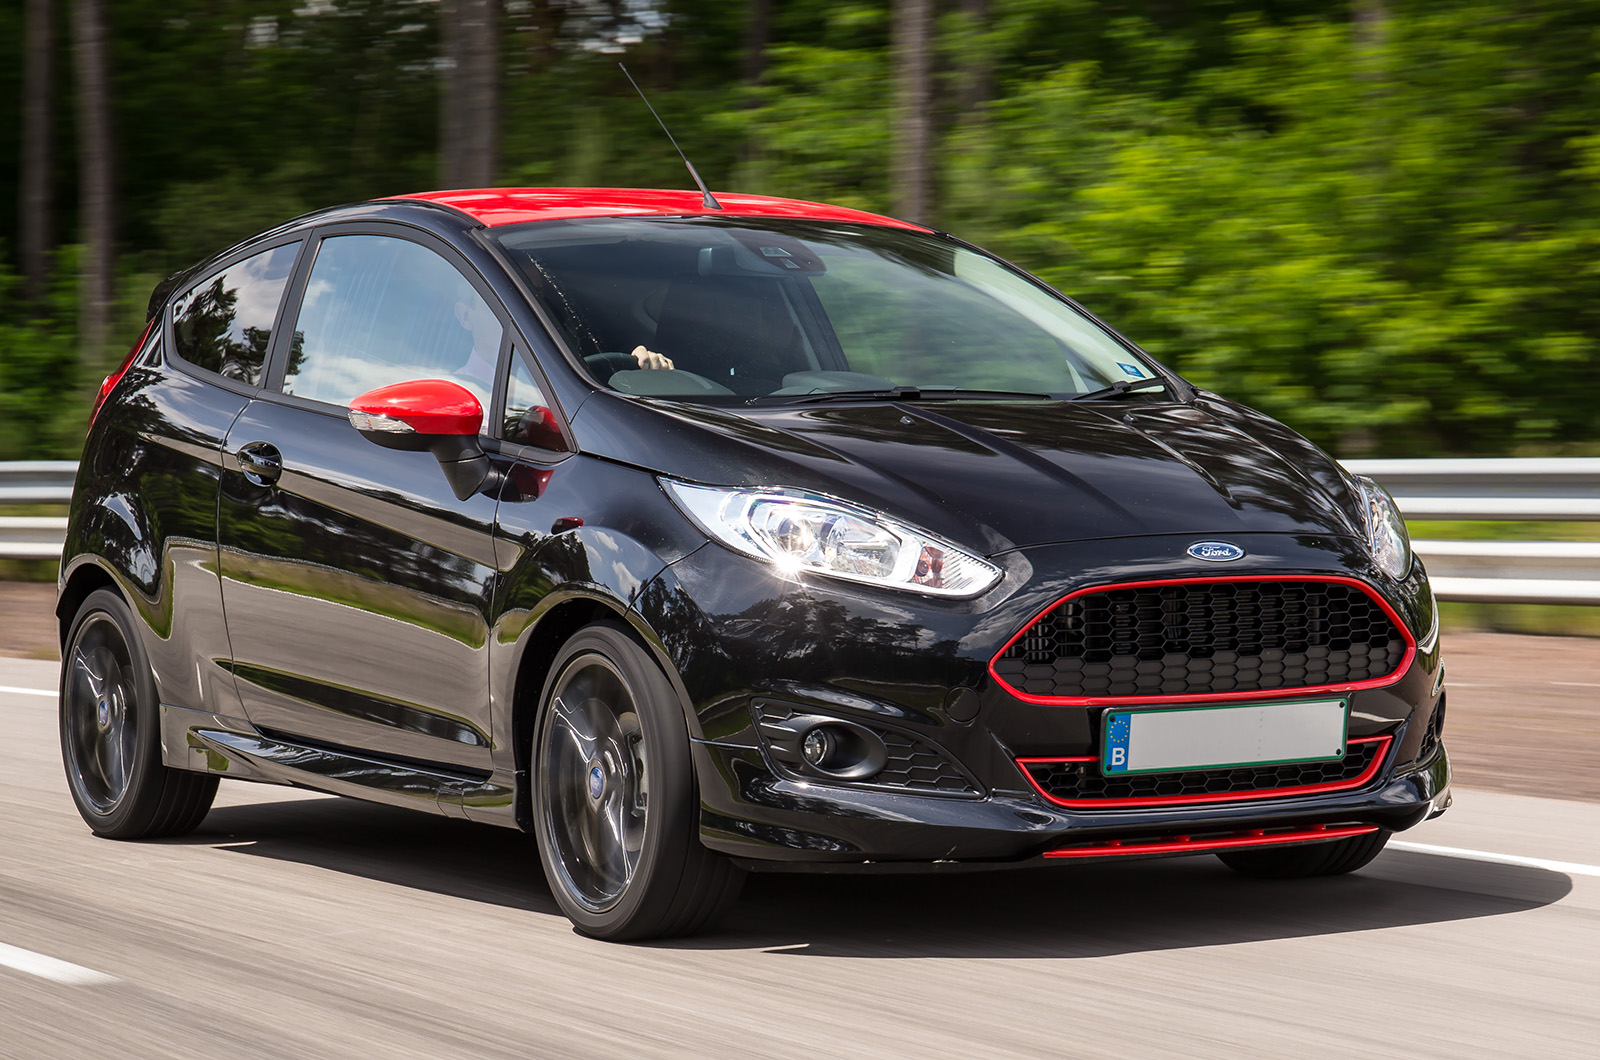 Ford Fiesta Red And Black Editions First Drive Review Autocar 2015 St